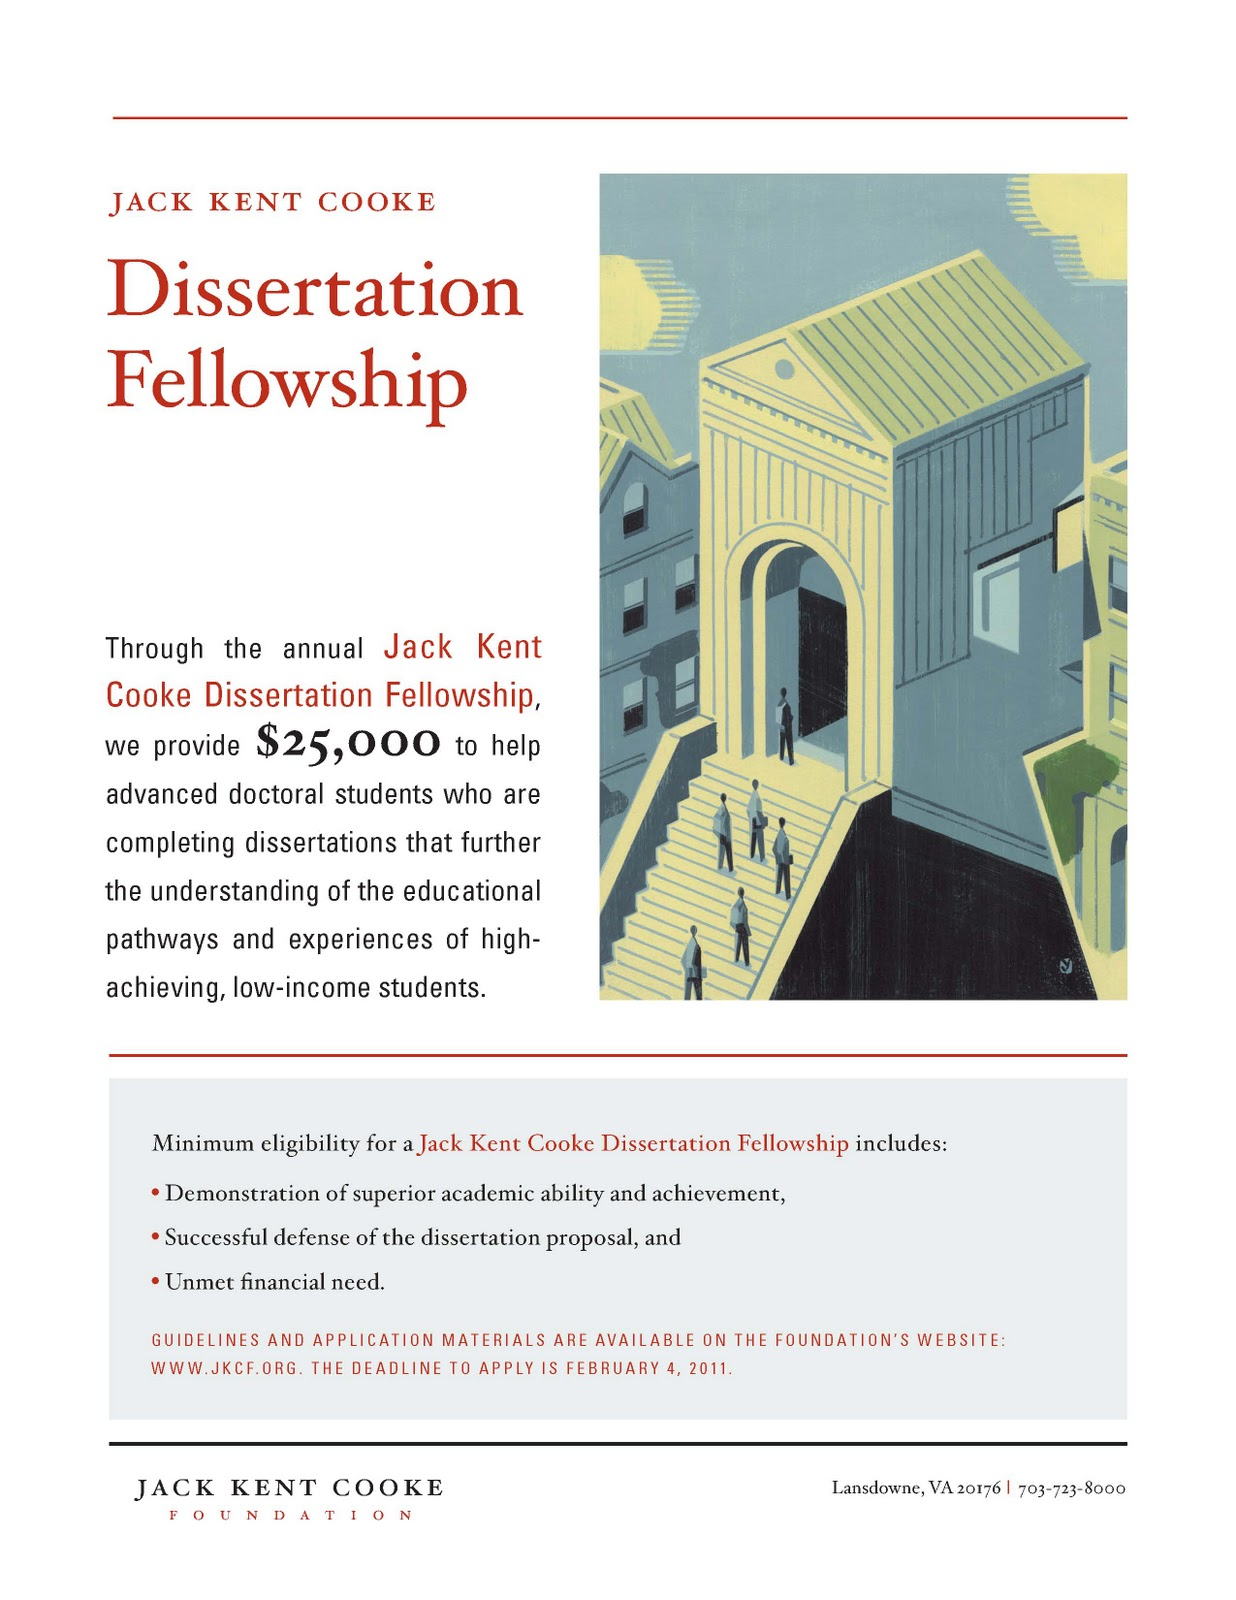 Jack kent cooke dissertation fellowship